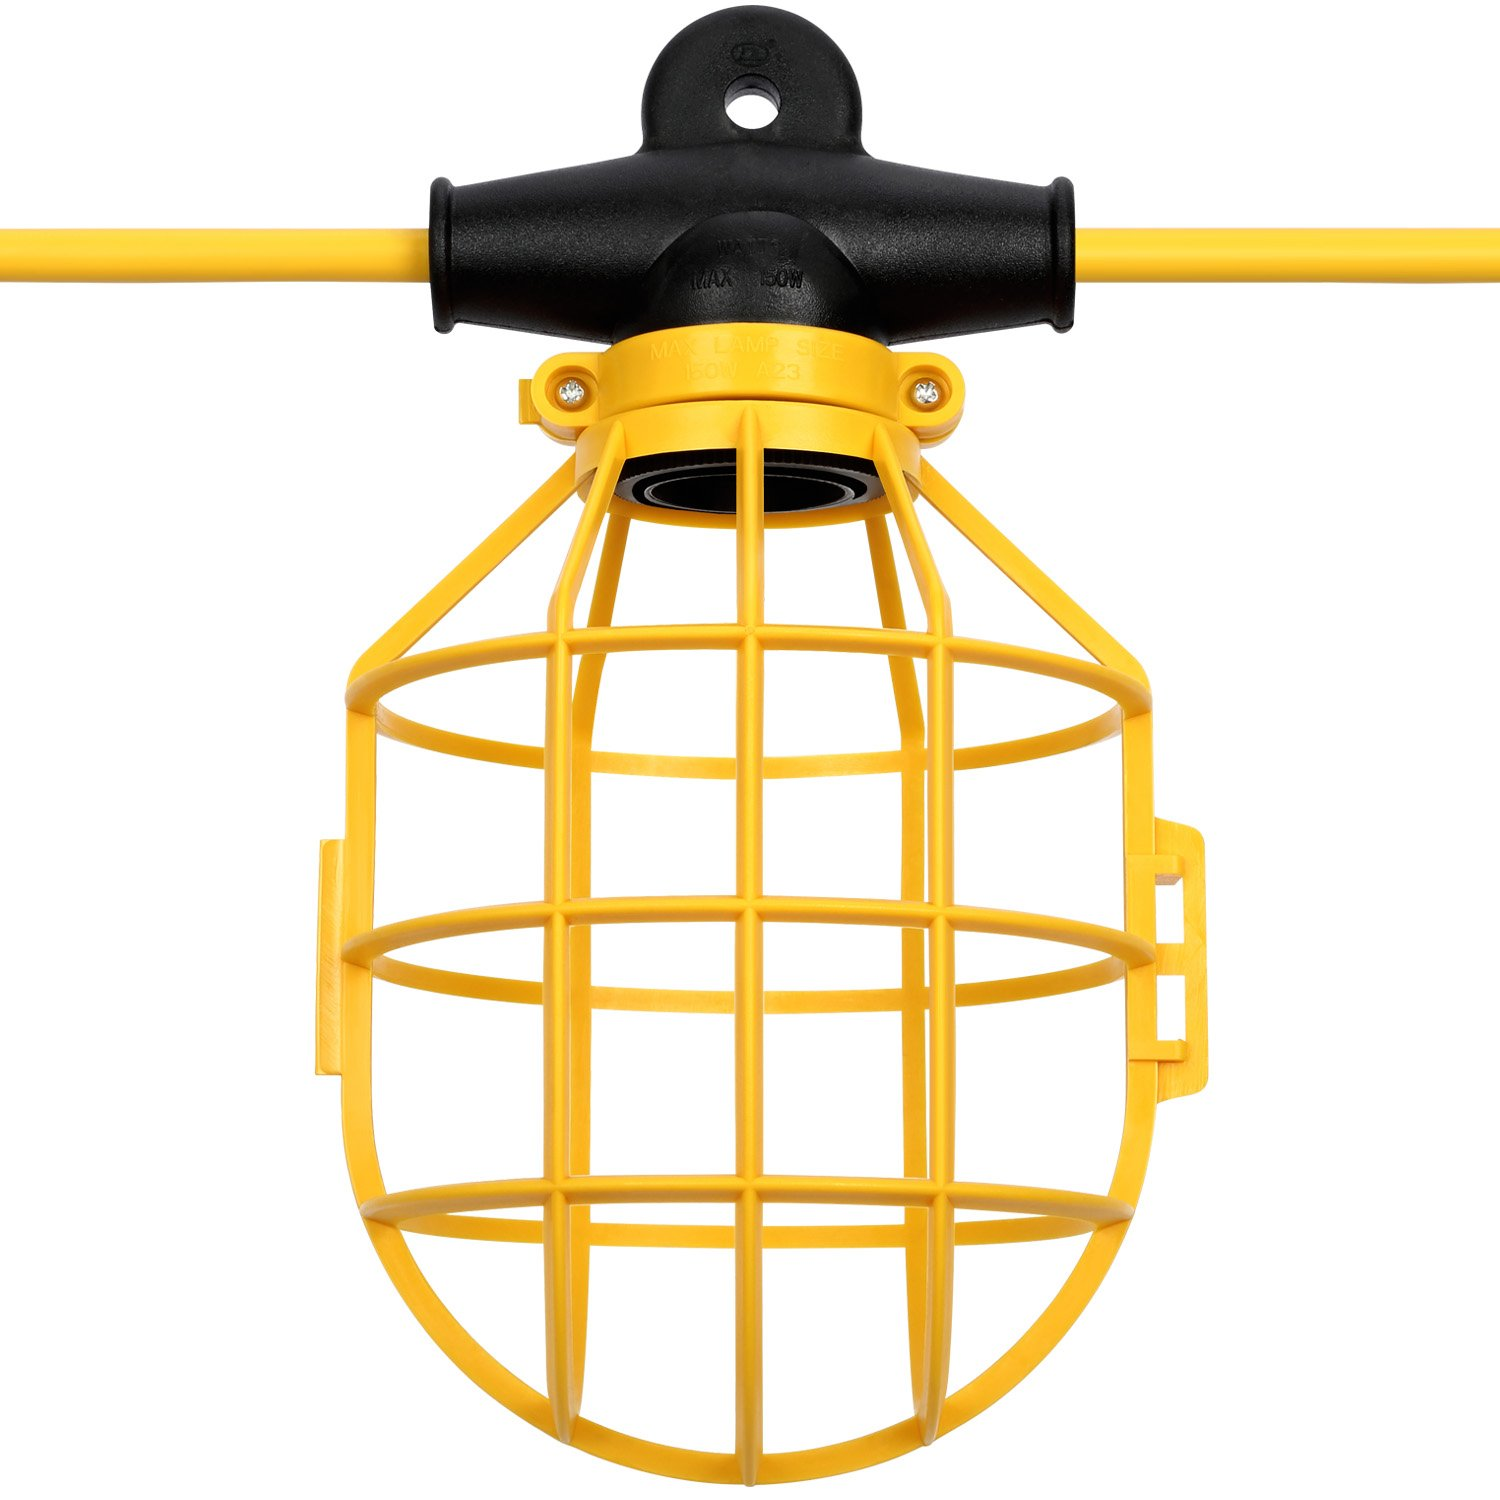 Miusco 50 Feet SJTW 14/2 5-Socket Commercial Duty Lamp Holder with Plastic Light Bulb Cage, Temporary String Work Light Guard, 120V 150W 12A by Miusco